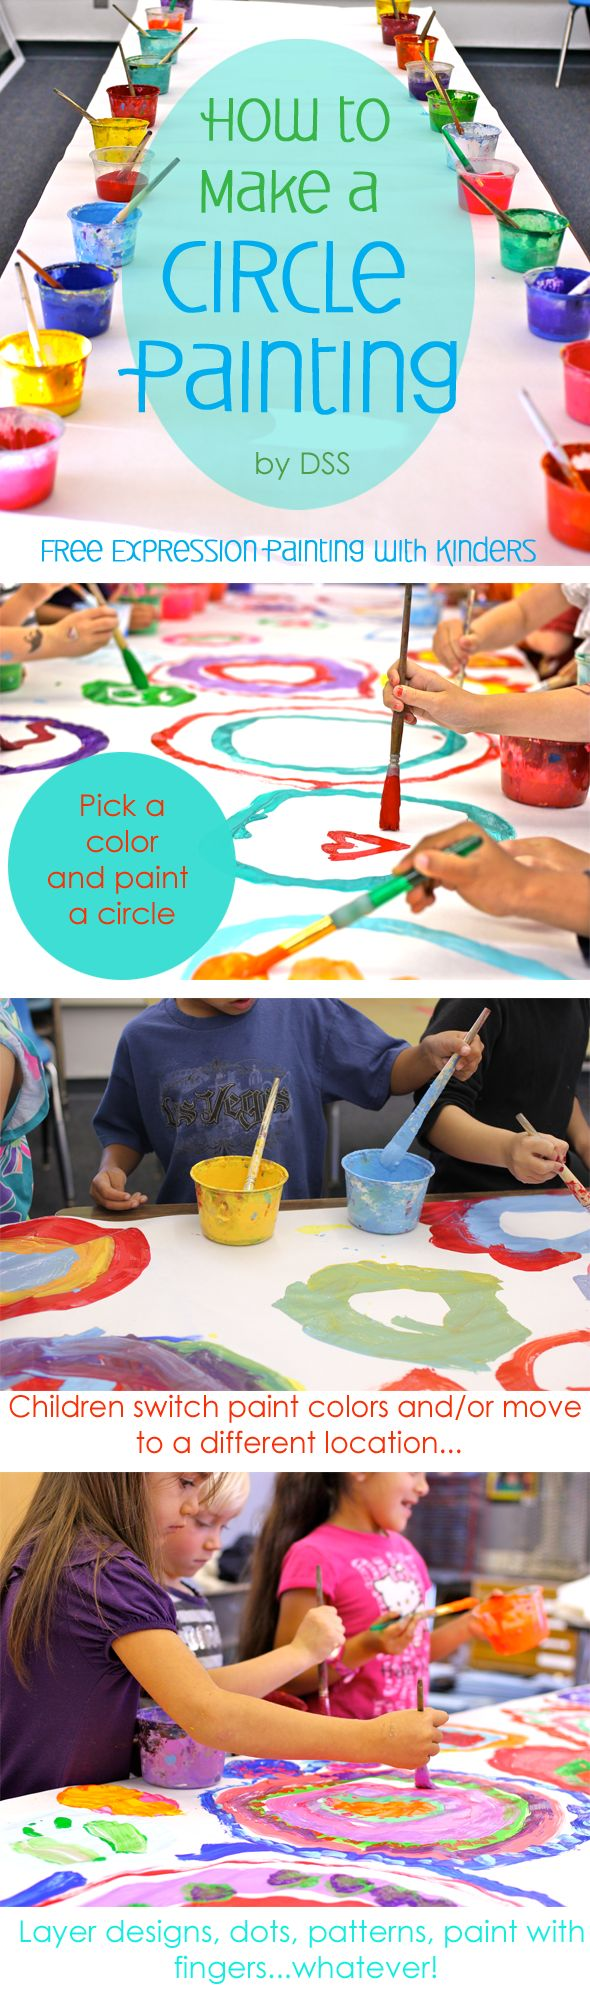 Circle-Painting Art project